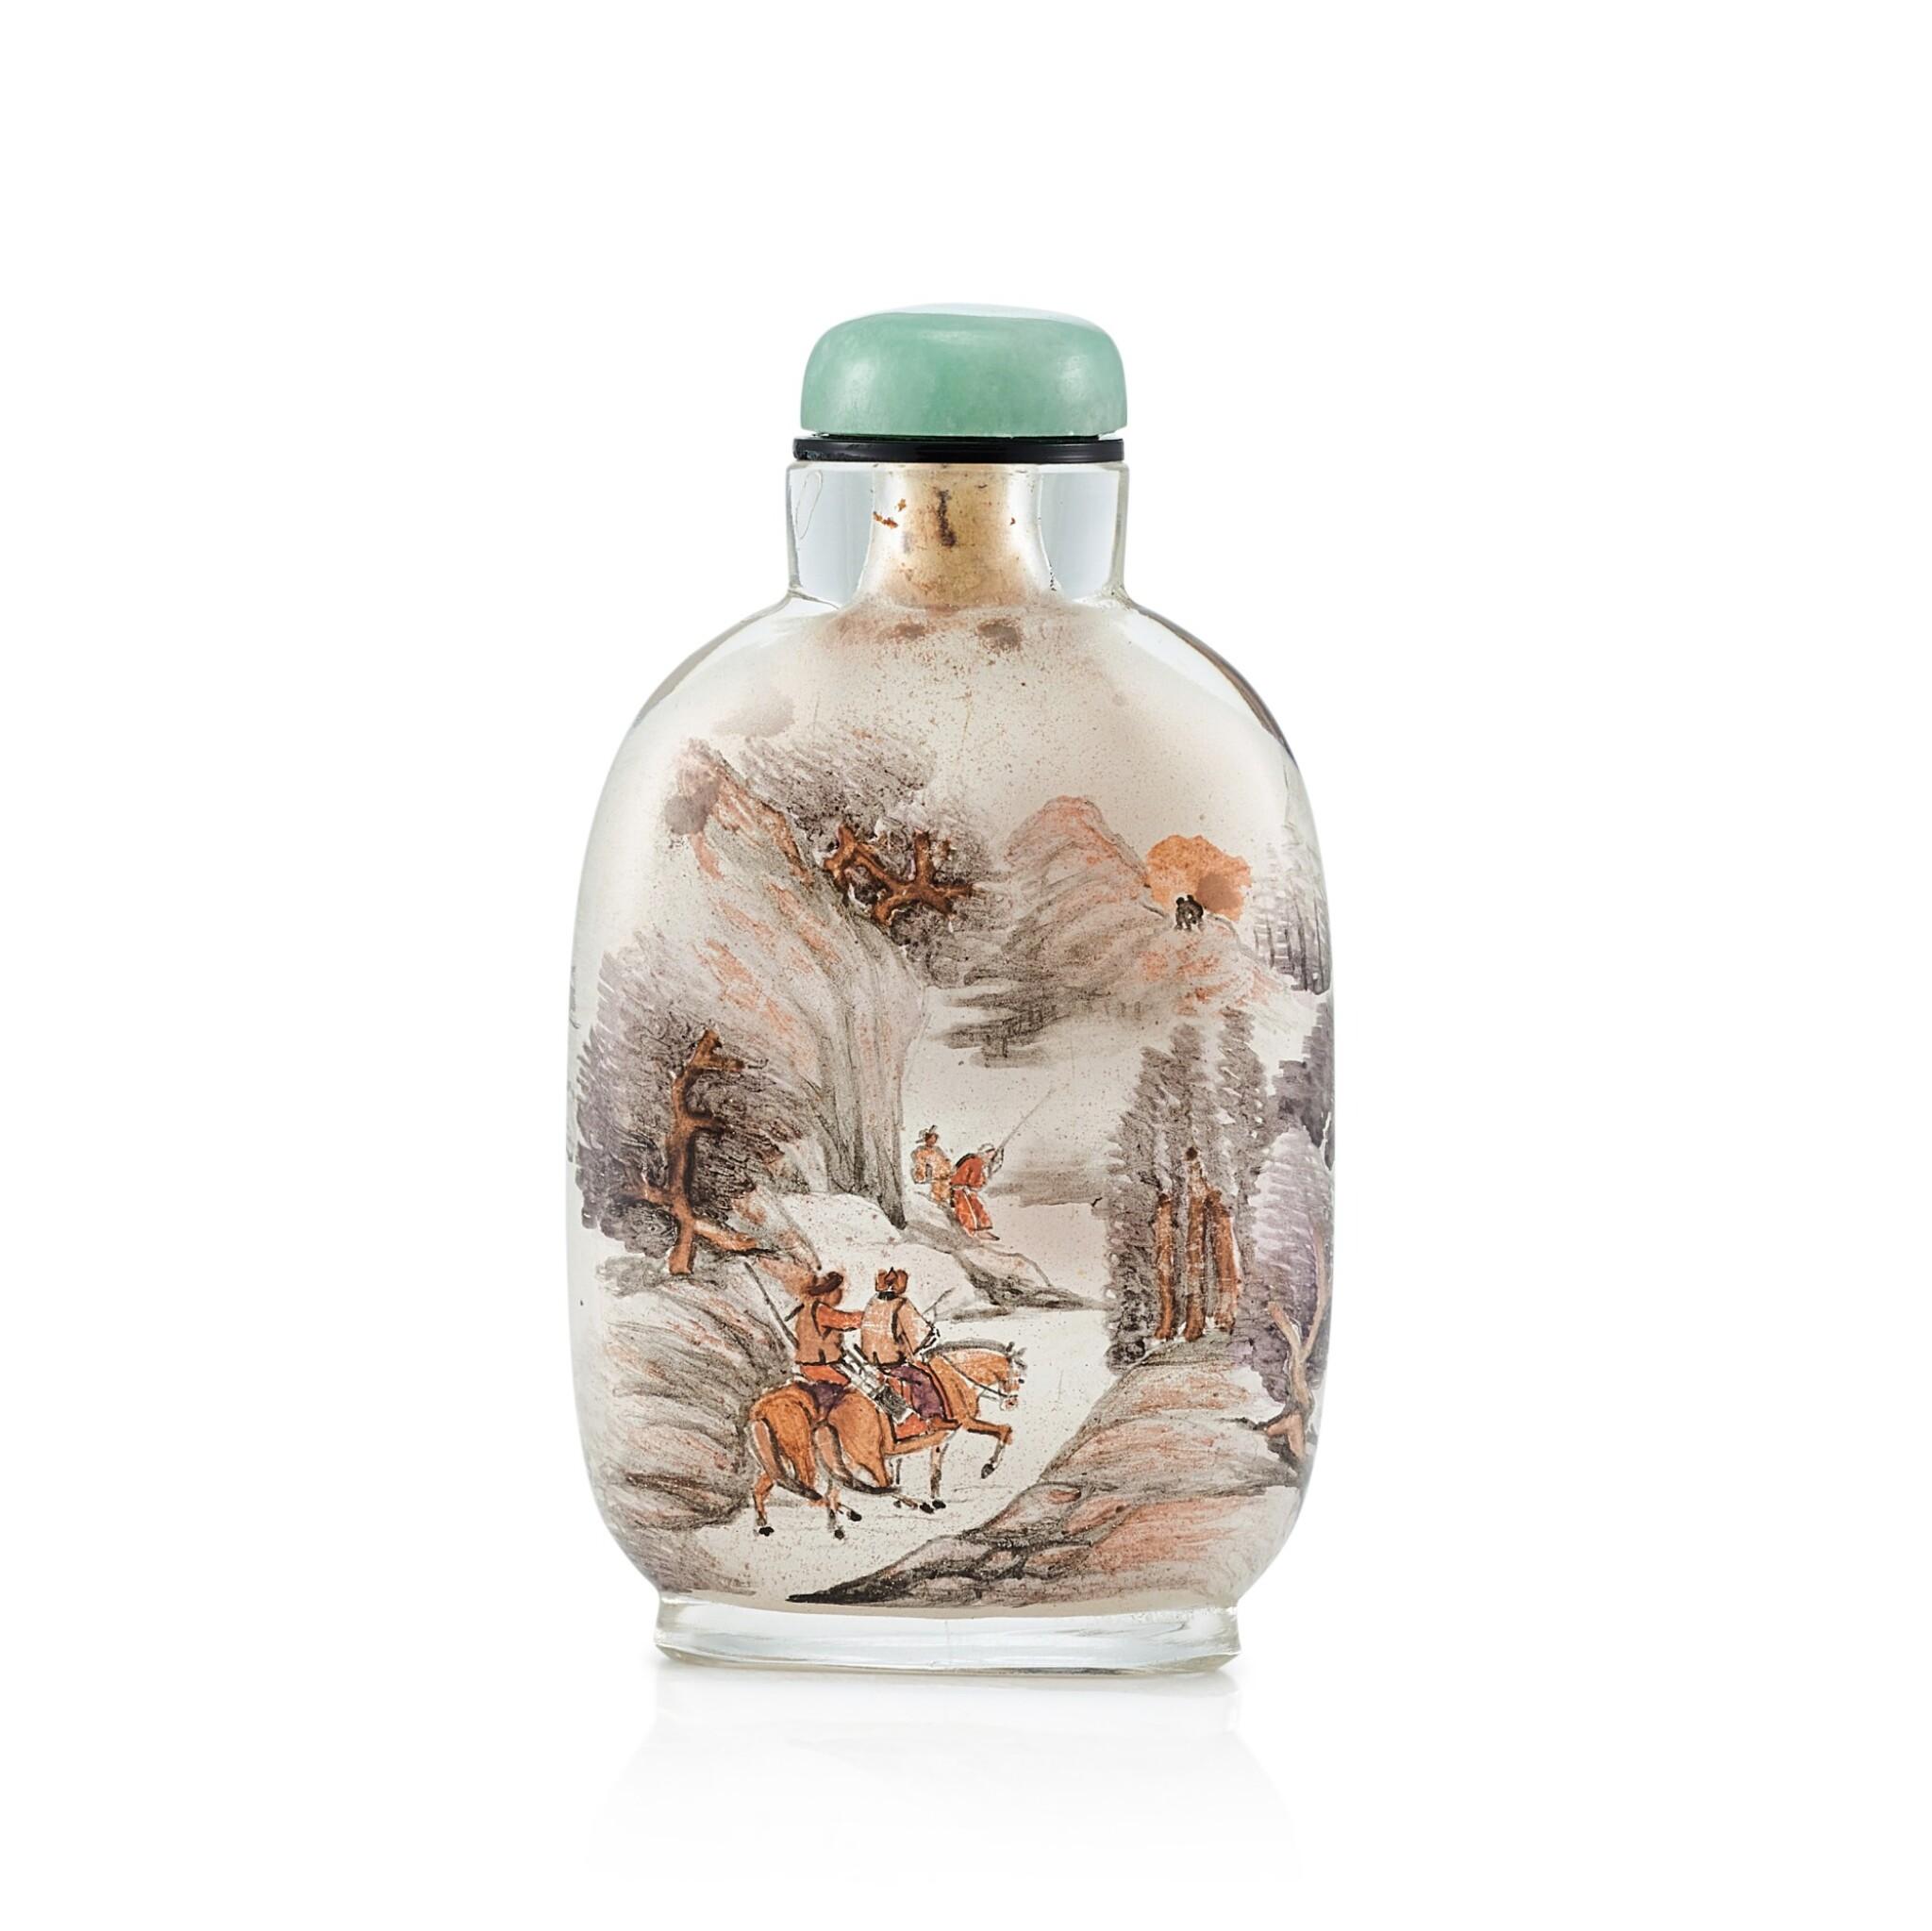 View full screen - View 1 of Lot 3056. An Inside-Painted Glass 'Equestrians in a Landscape' Snuff Bottle By Zhang Baotian, Dated Wuxu Year, Corresponding to 1898 | 戊戌(1898年) 張葆田作玻璃內畫狩獵圖鼻煙壺 《戊戌秋月張葆田作》款.